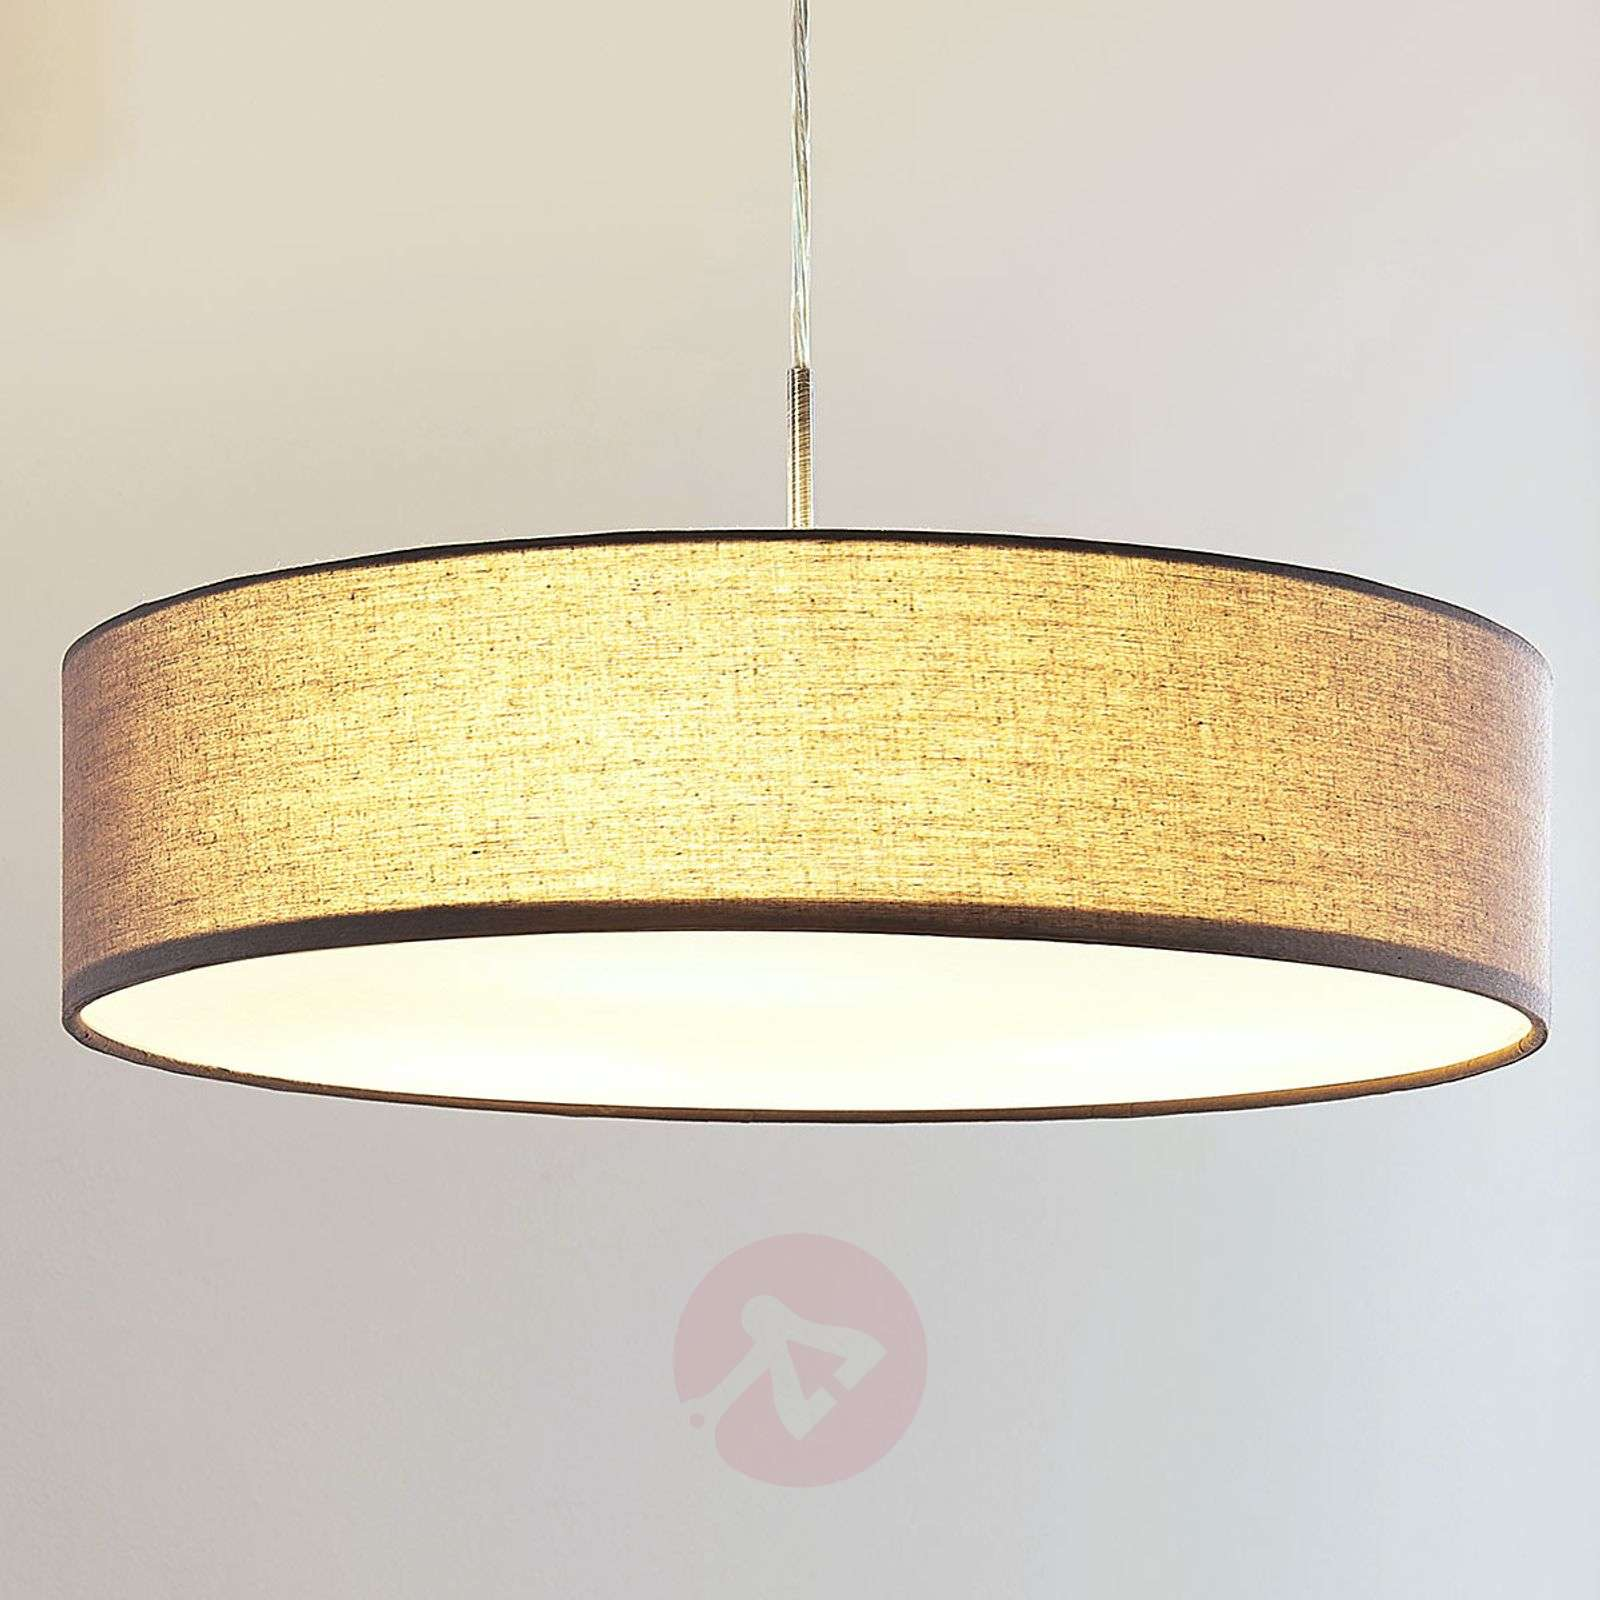 Sebatin grey fabric pendant lamp with E27 LEDs-9620322-02